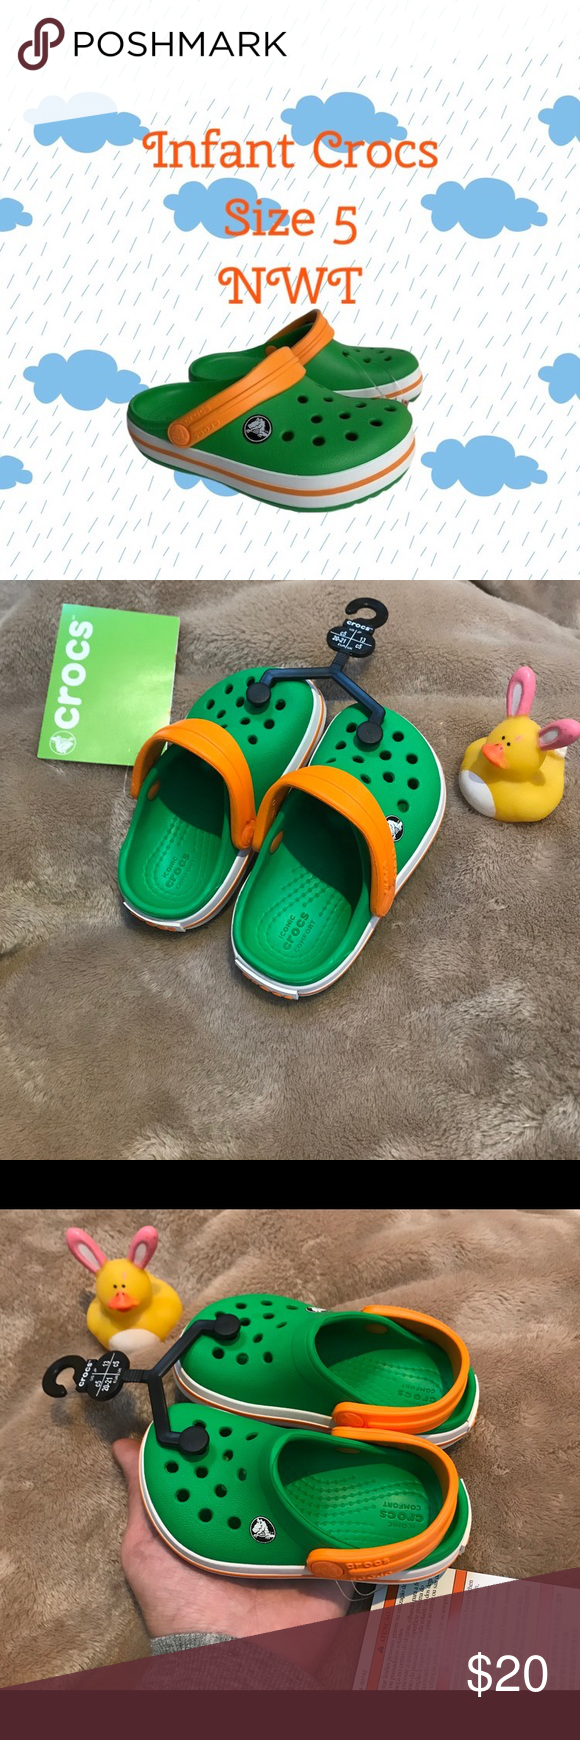 Infant Crocs 👣 👶 NEW WITH TAGS